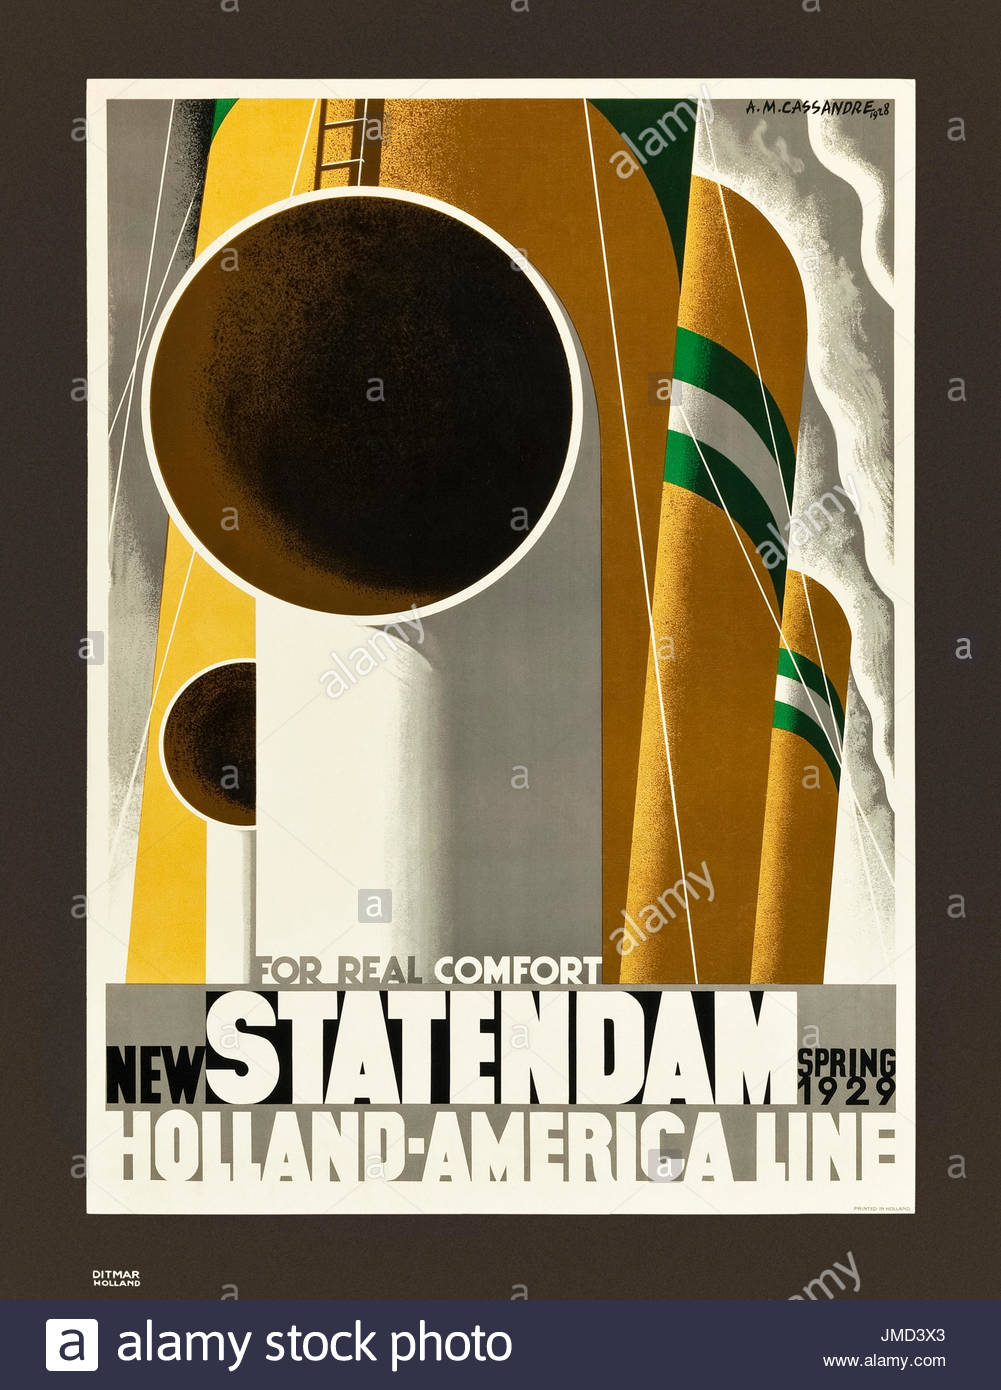 'For Real Comfort New Statendam' Holland America Line poster promoting the launch of the Statendam in Spring 1929. Designed by Adolphe Mouron Cassandre (1901-1968). - Stock Image